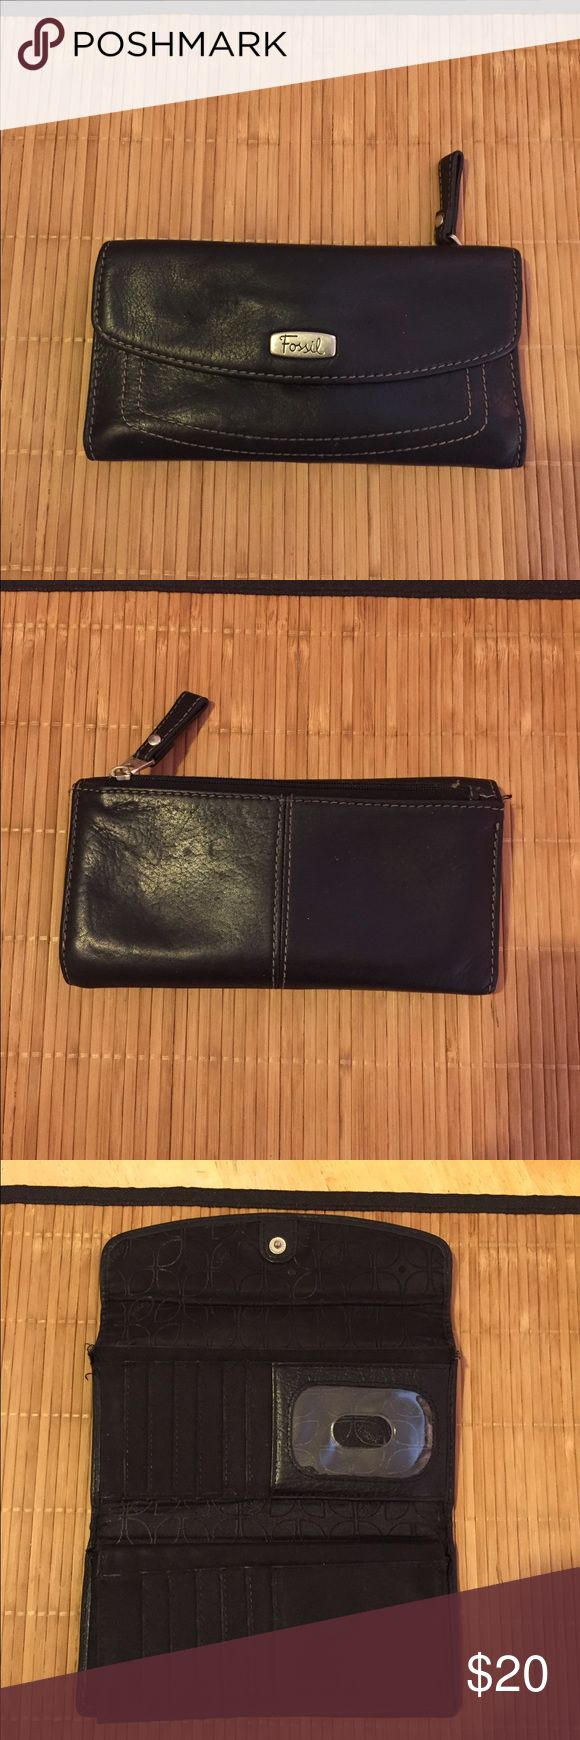 Fossil wallet Fossil wallet, Pre-Loved❤️❤️❤️😍😍, slightly ravelled on both upper rear side - 🌺🌺about 18 card slots, an I.D Card window, 4 bill slots, a coin section In rear. Fossil Bags Clutches & Wristlets